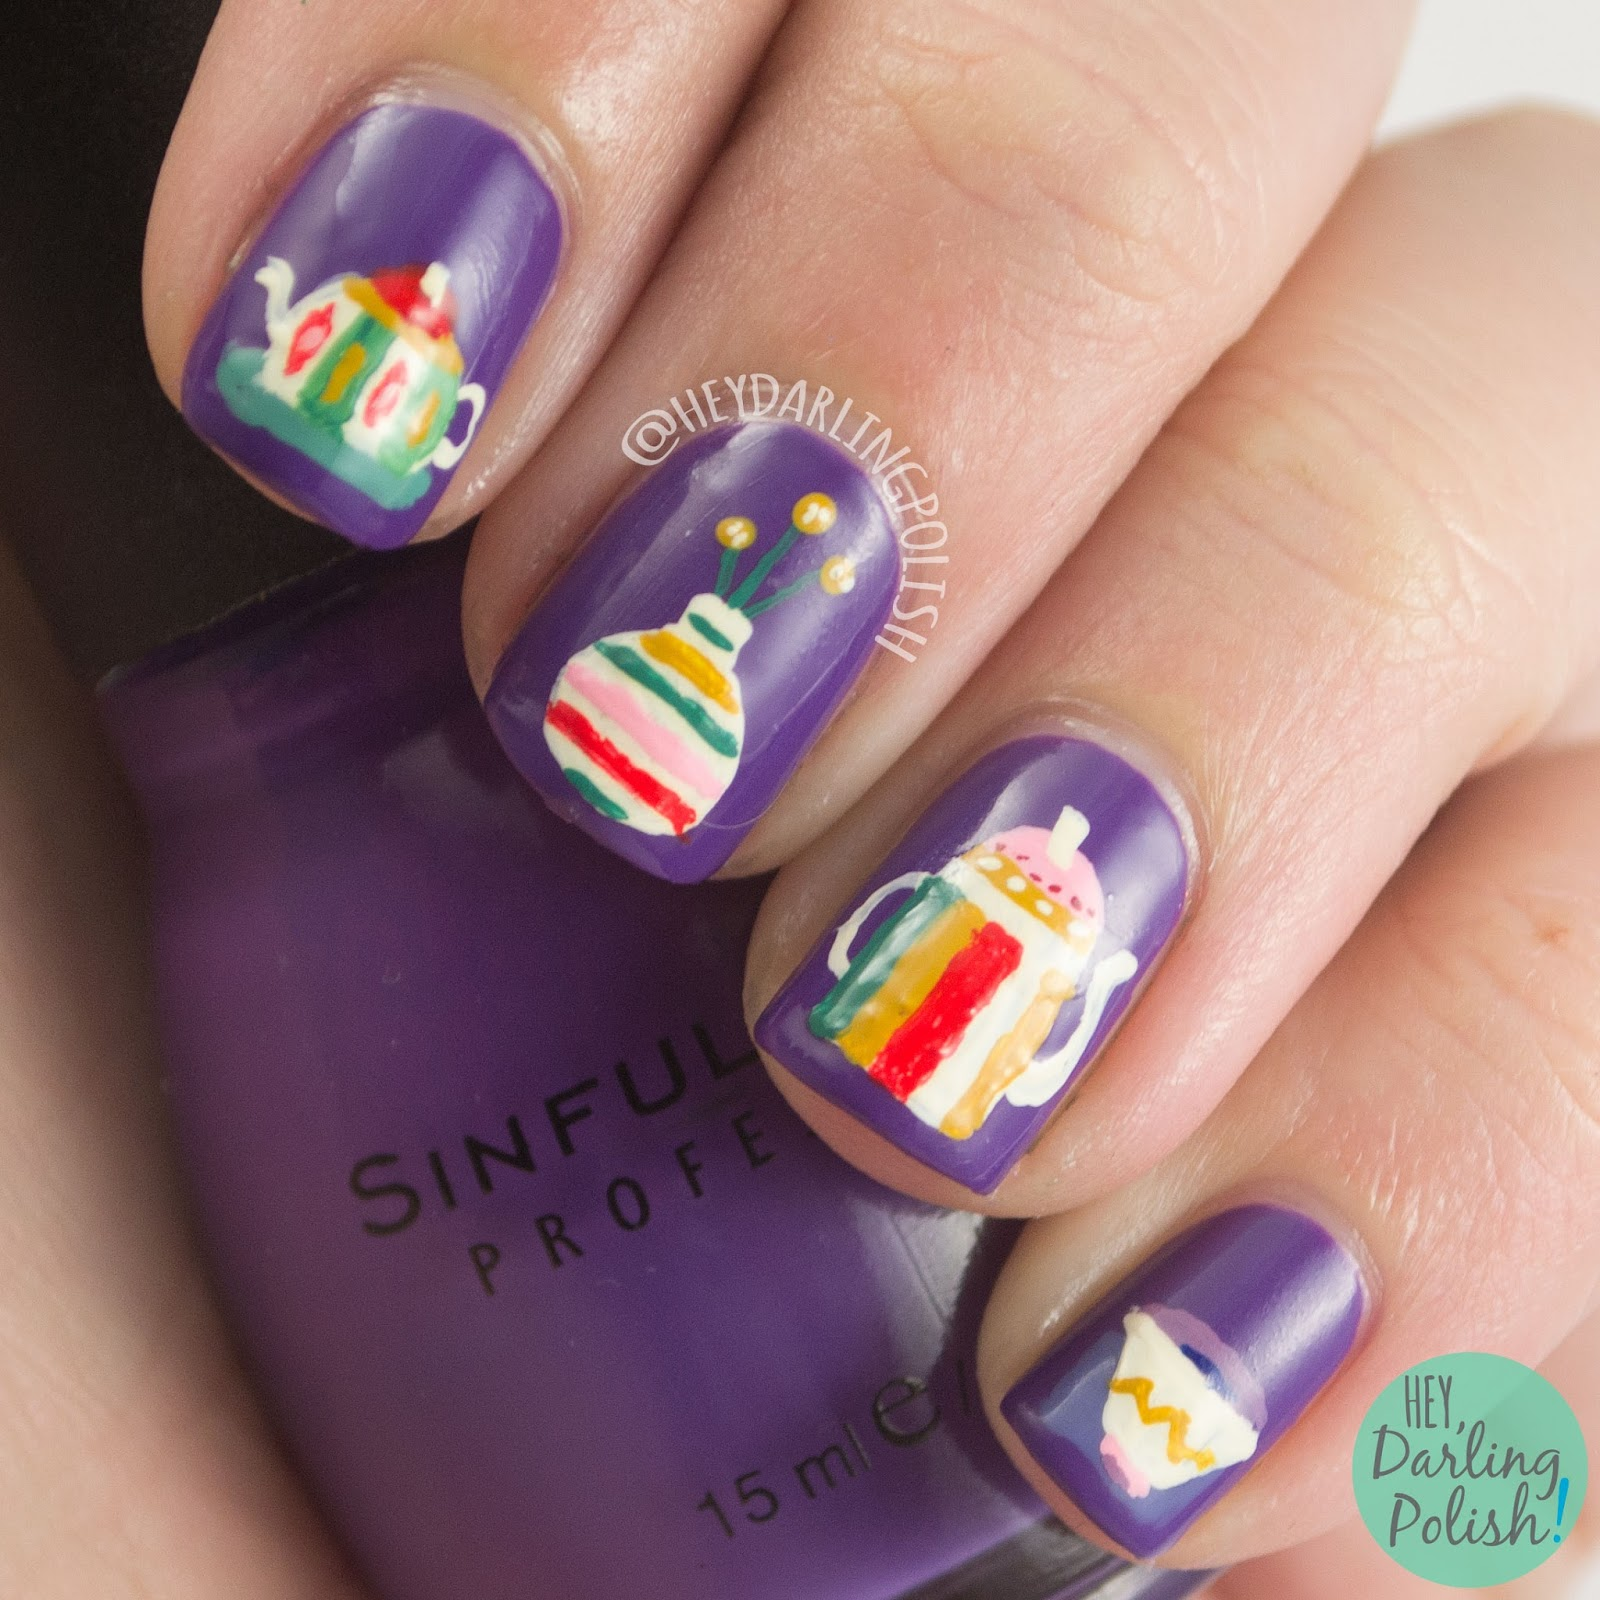 nails, nail art, nail polish, tea party, tea, purple, the nail challenge collaborative, hey darling polish, free hand, acrylic paint, pattern